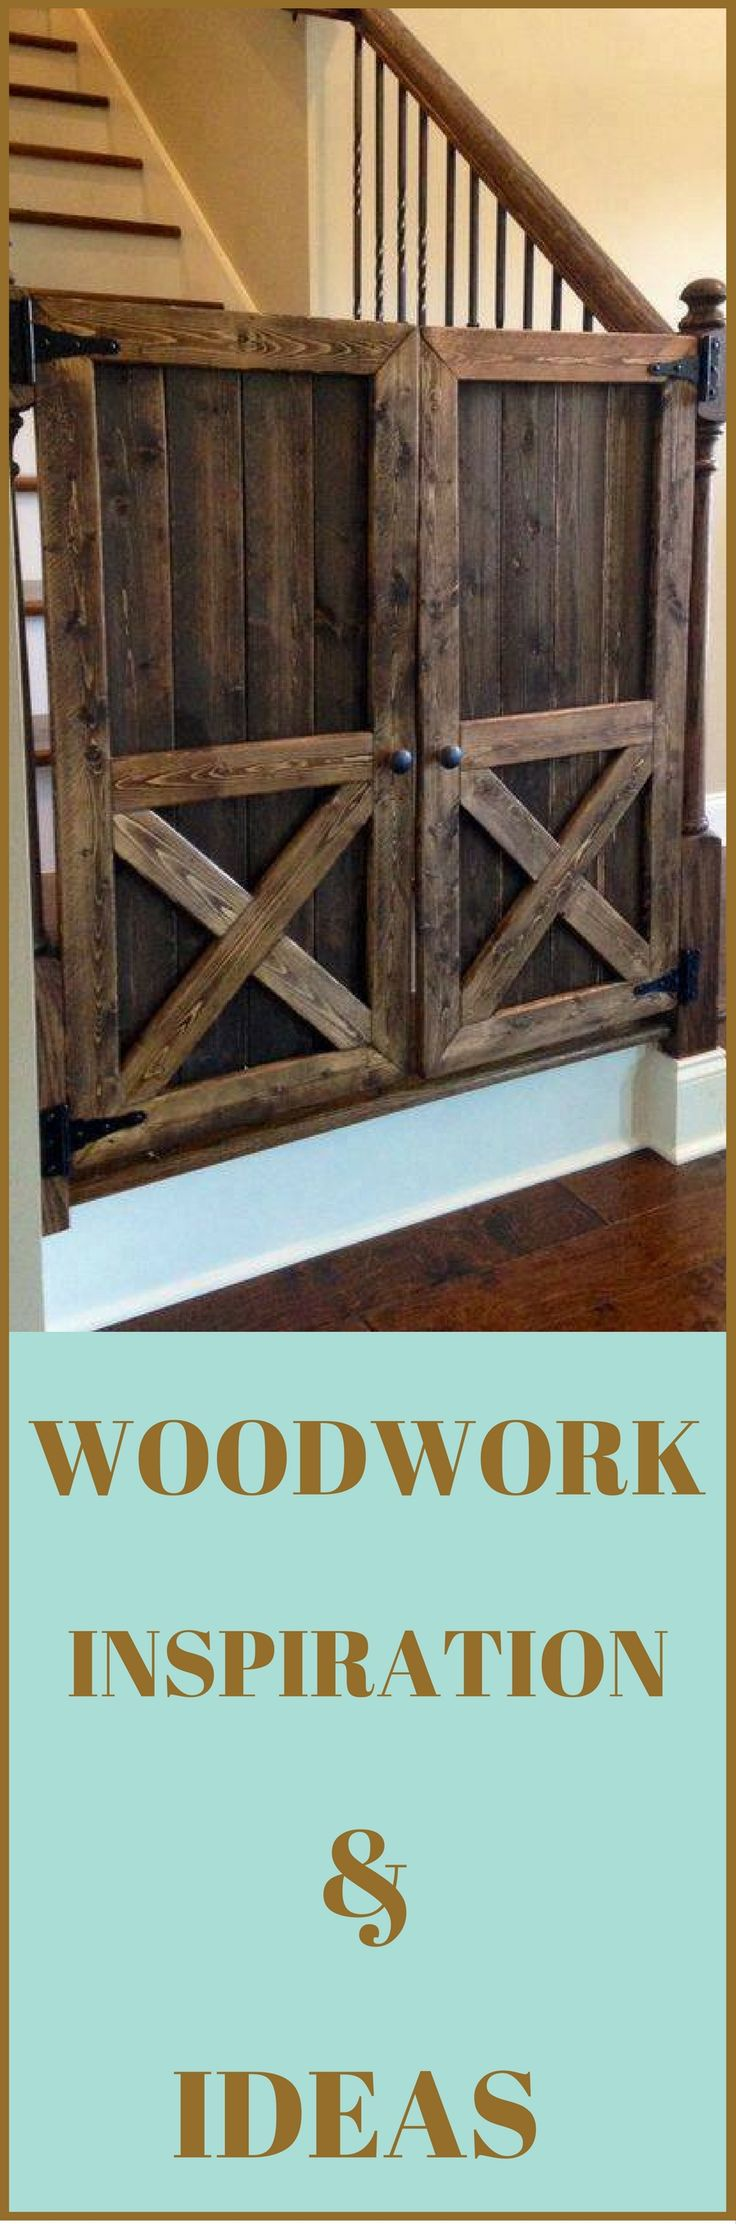 Woodworking Plans, Projects and Ideas http://vid.staged.com/aFks                                                                                                                                                                                 More